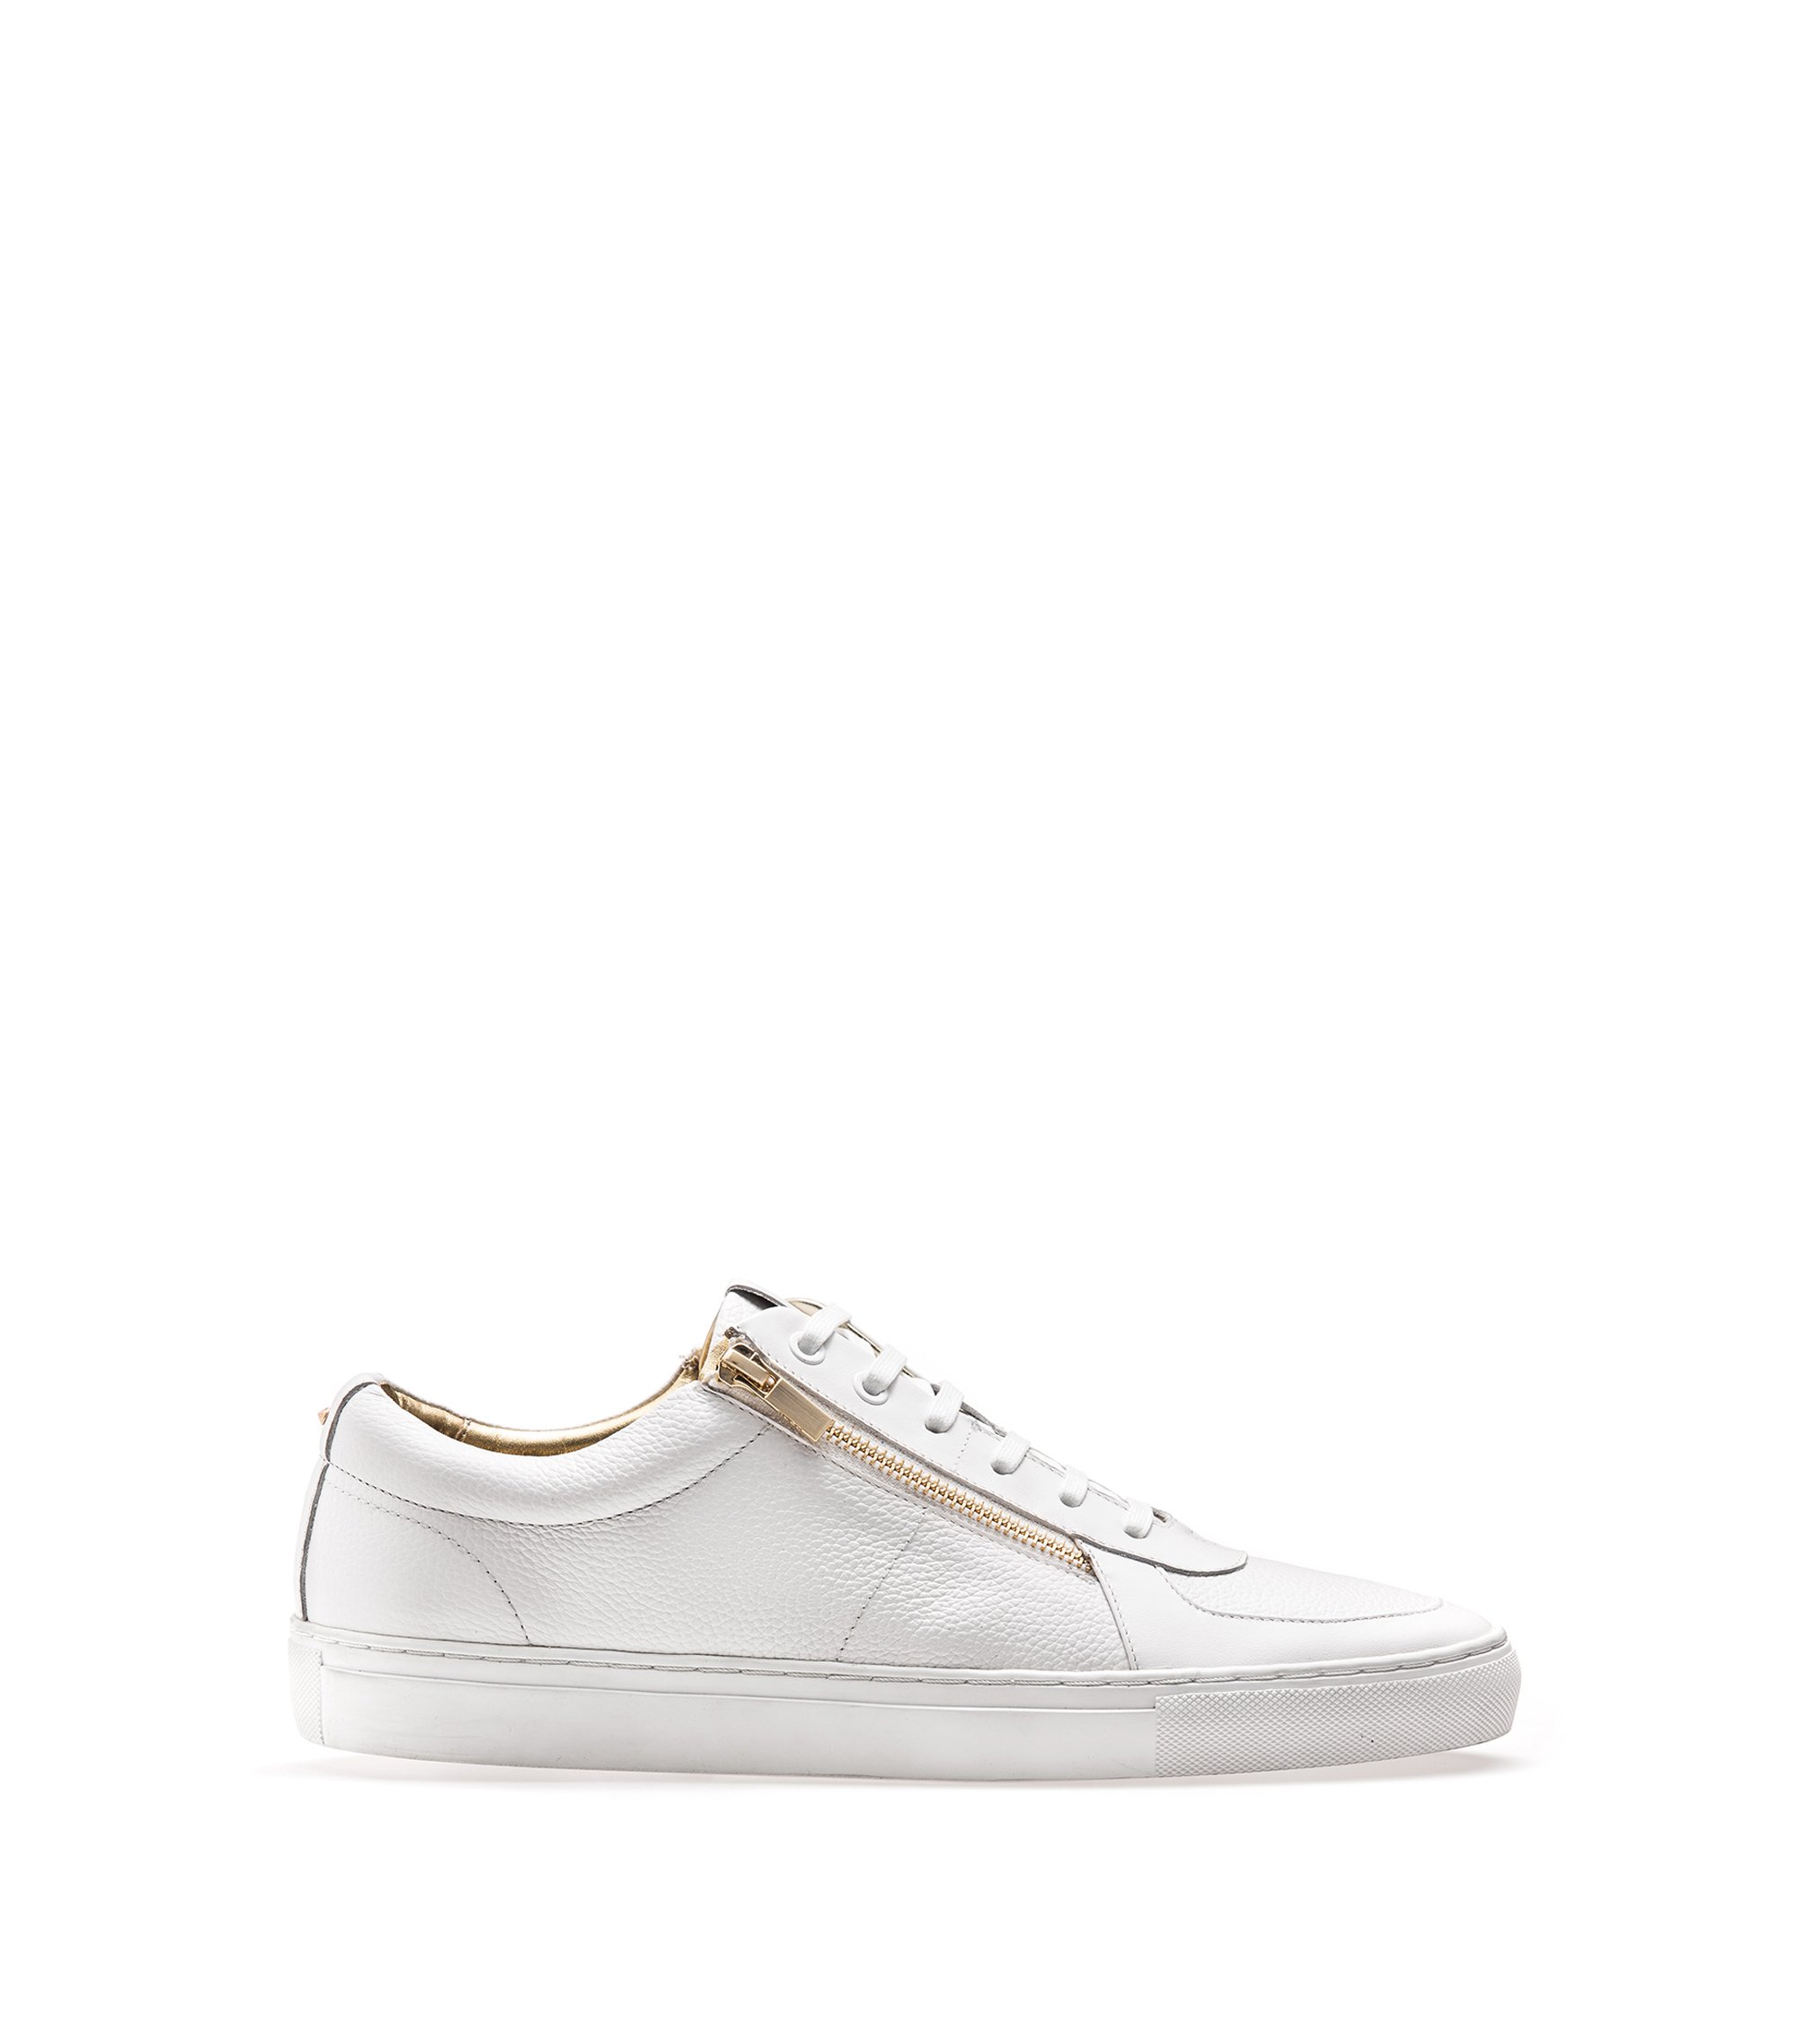 Sneakers low-top in pelle nappa e pelle martellata con doppia zip, Bianco